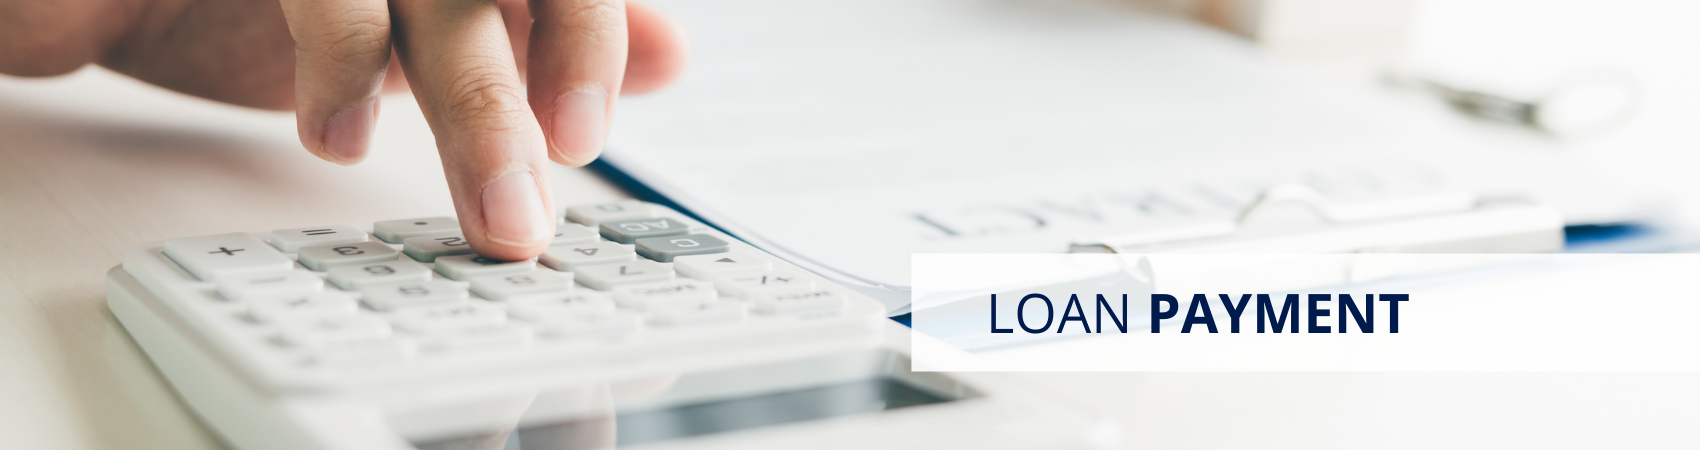 Loan Payment Page